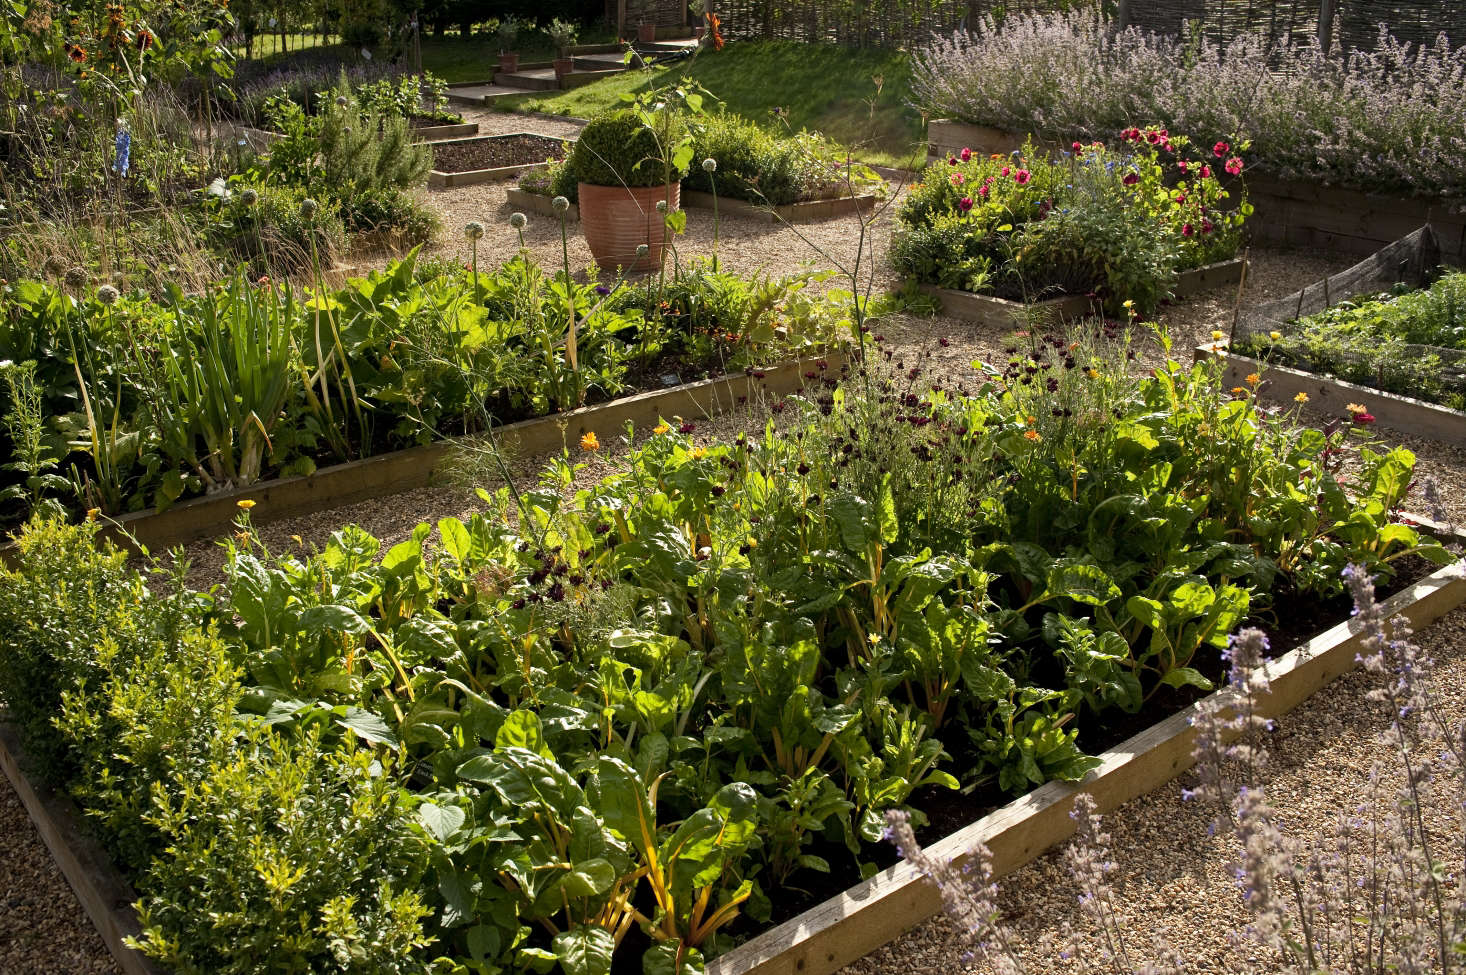 Photograph by Kevin Foord. Summer flowers and edible plants in raised beds at Darsham Nurseries in the UK. See more at Shopper's Diary: Darsham Nurseries on the Suffolk Coast.